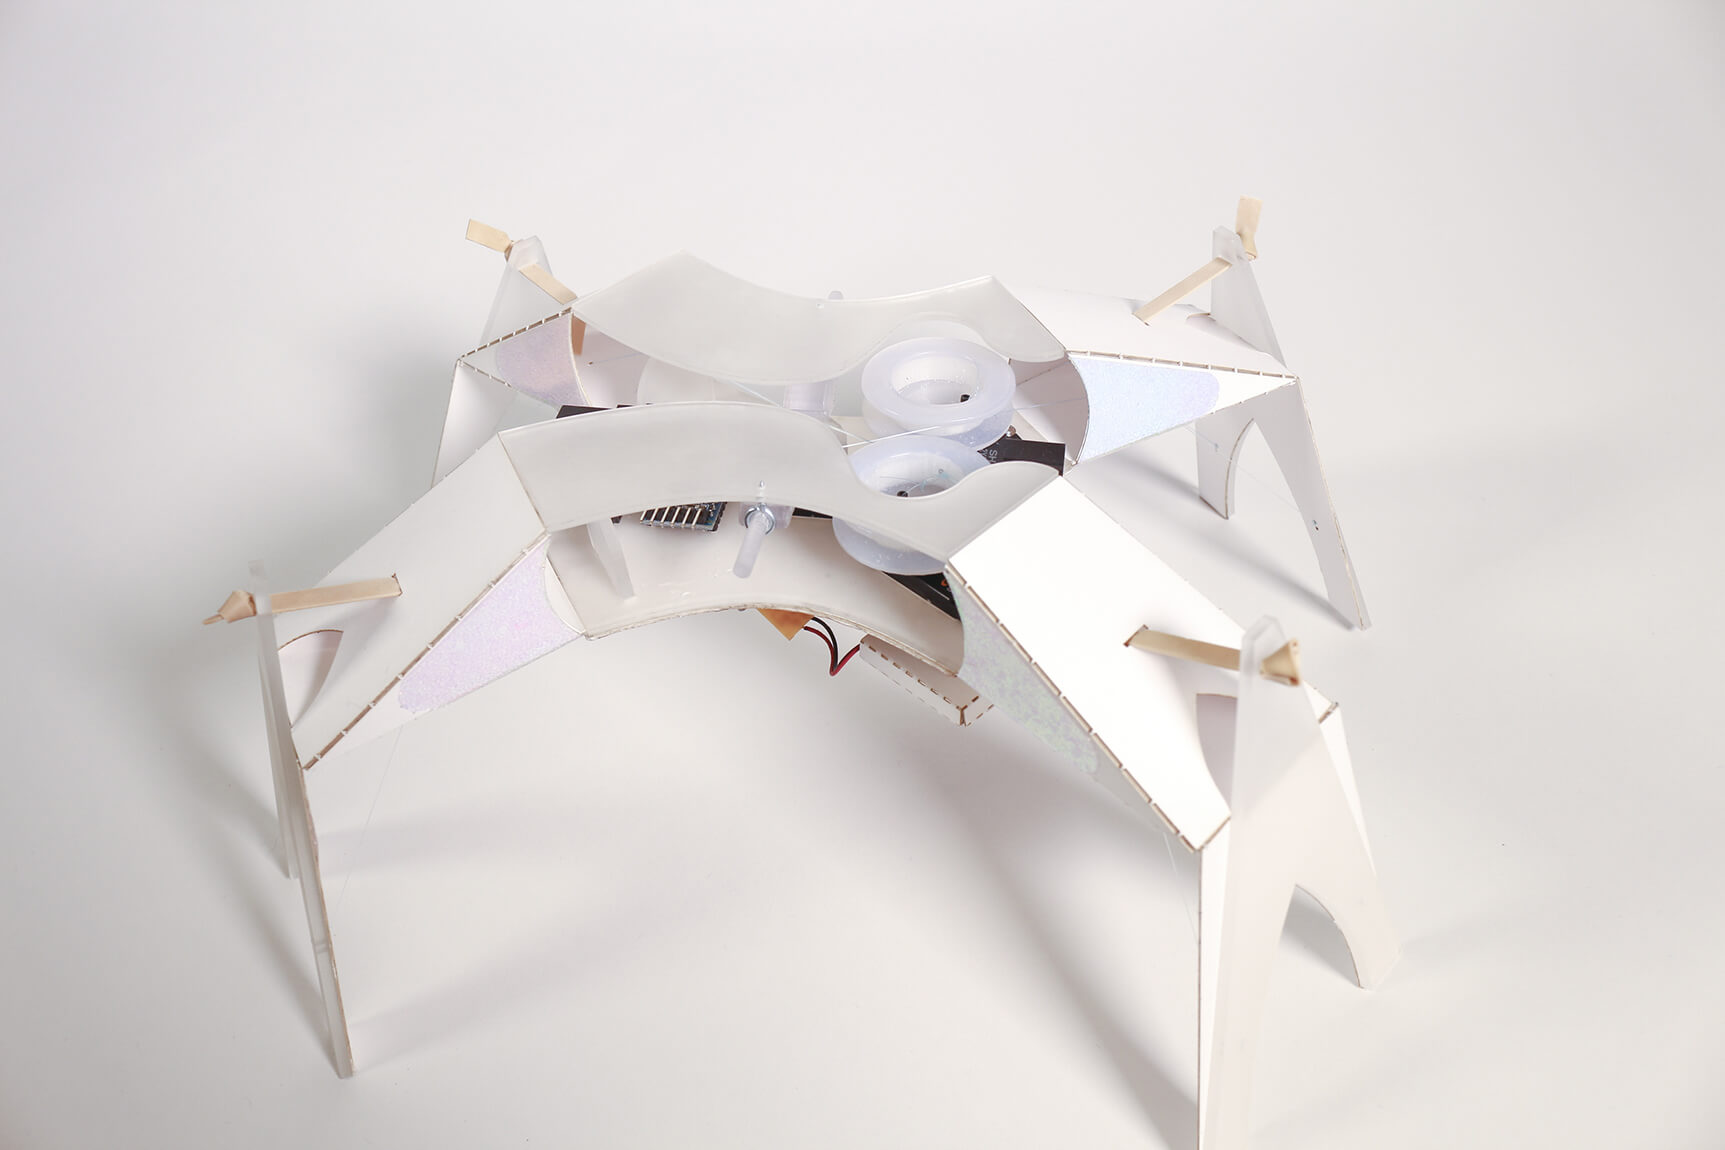 a paper robot photographed in perspective